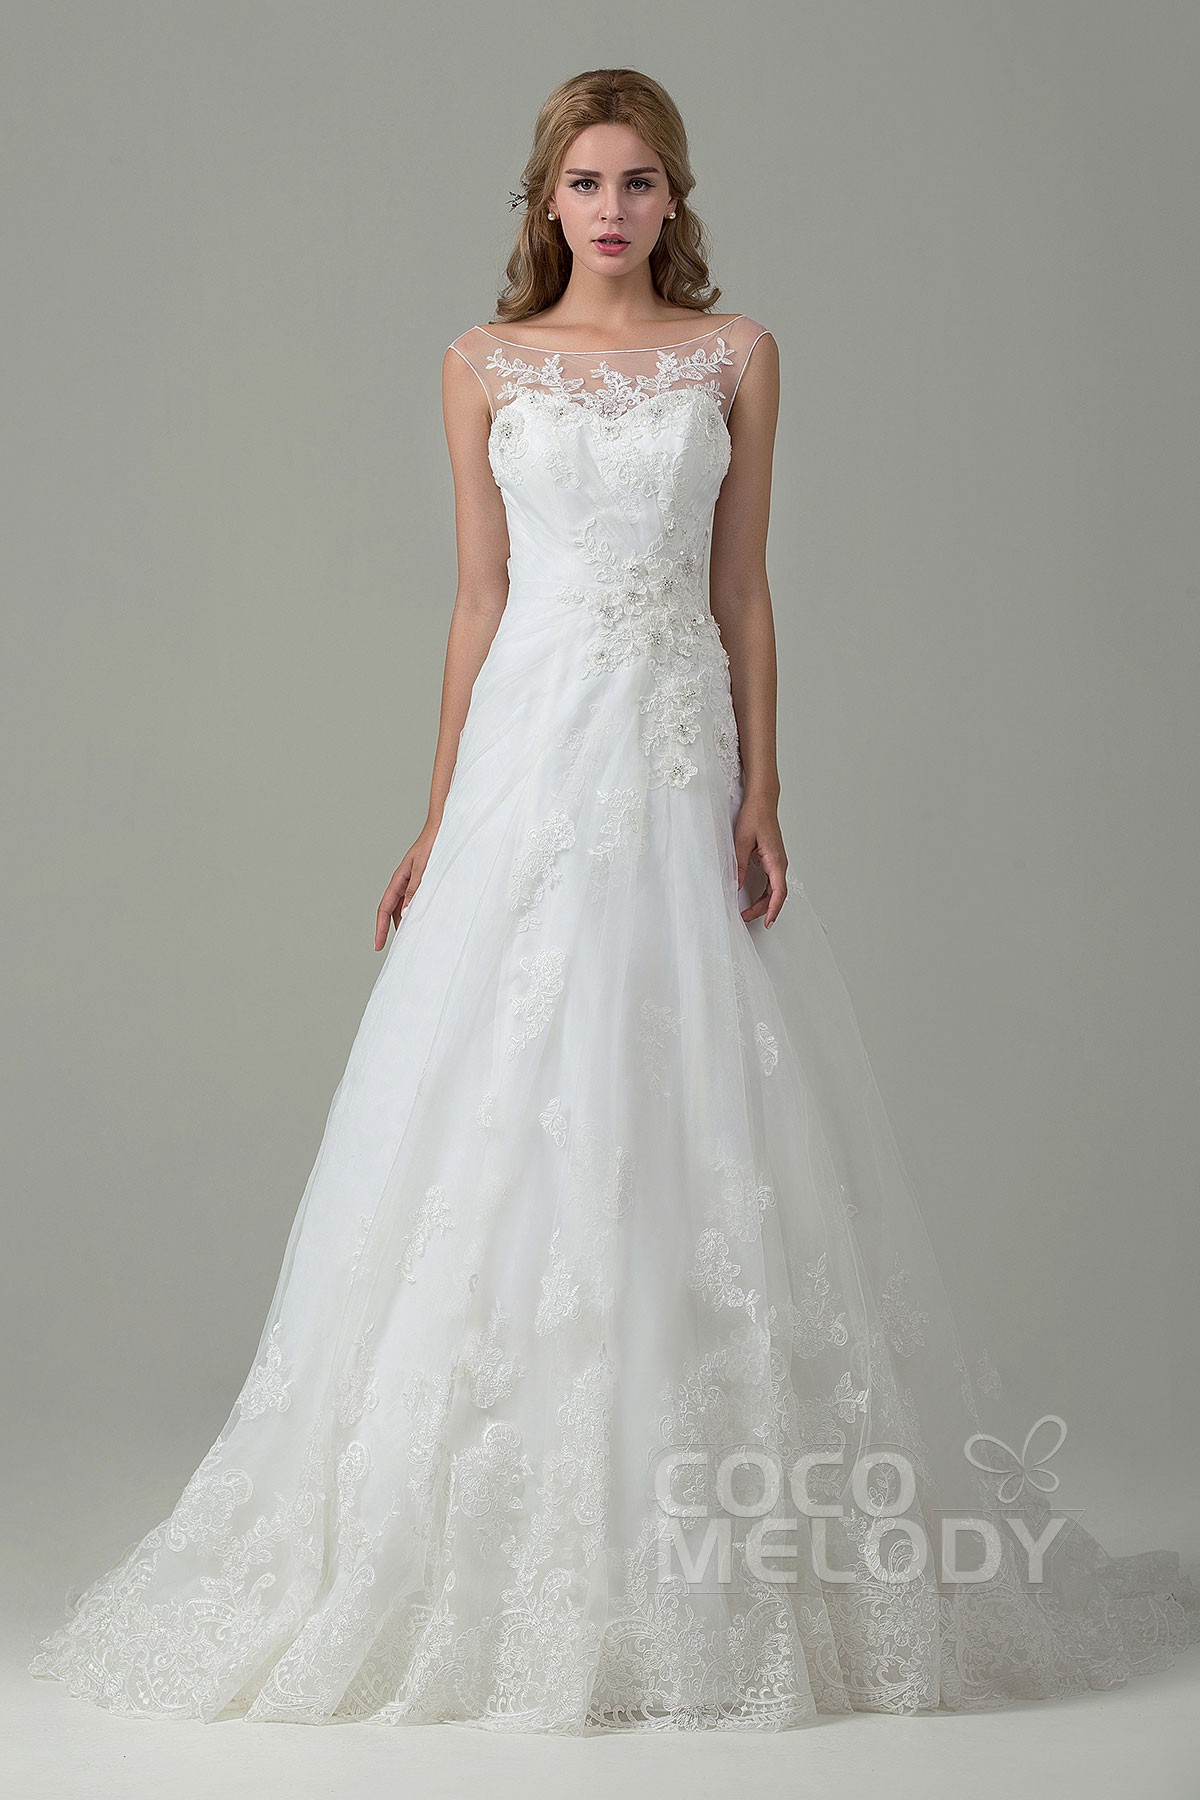 Cocomelody: Chic A-Line Illusion Tulle & Lace Wedding Dress w ...